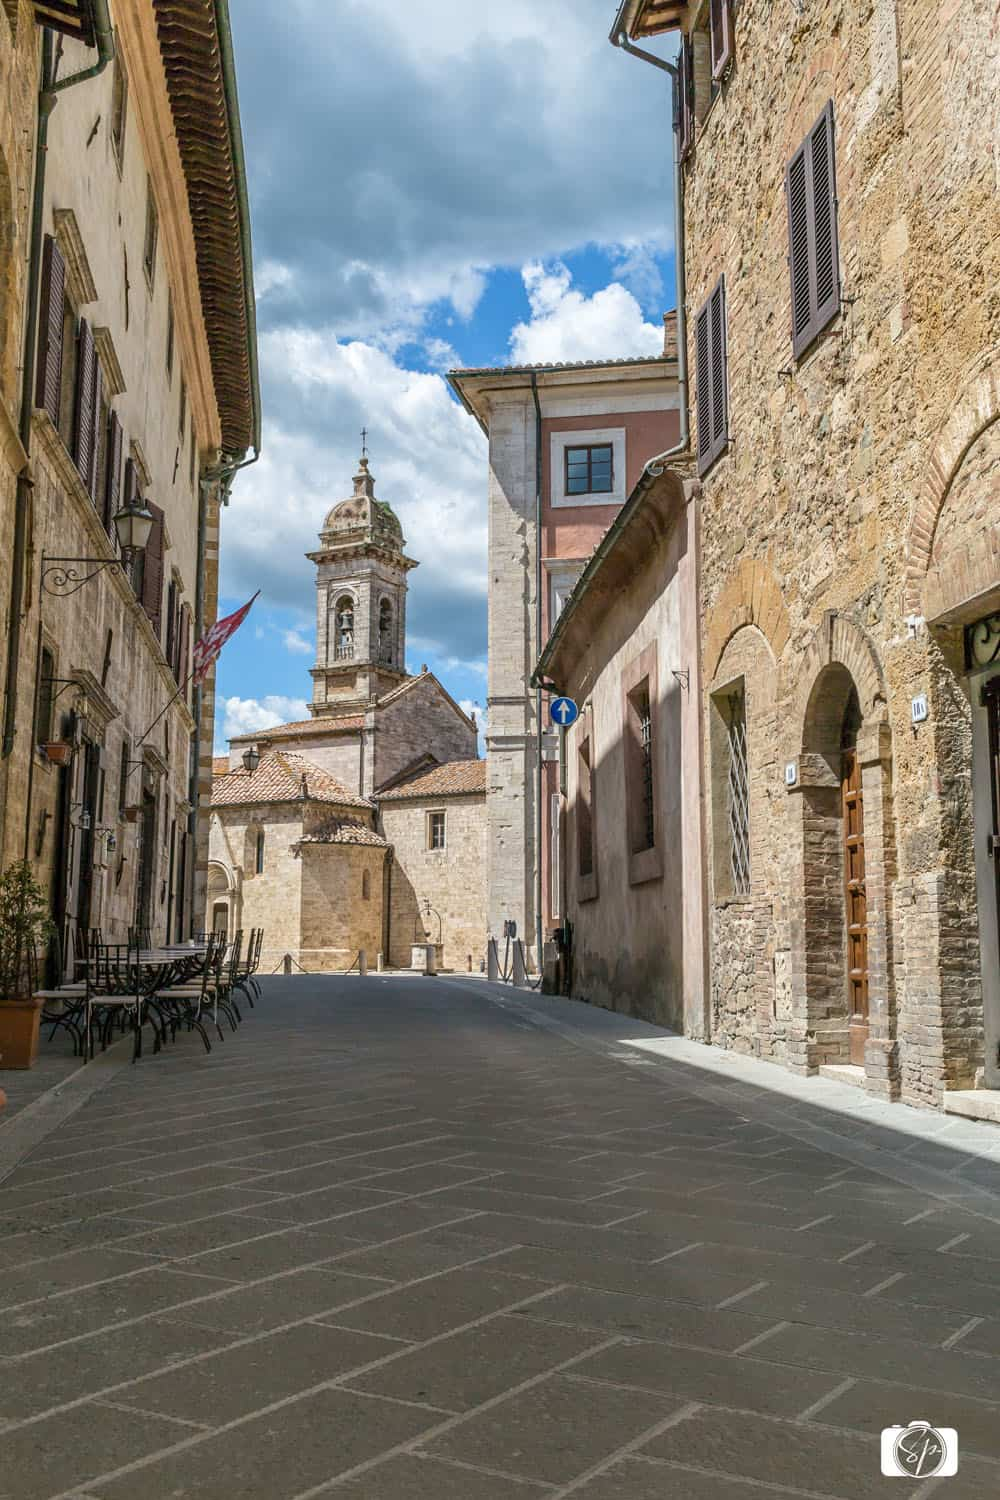 San Quirico d'Orcia in Tuscany Italy